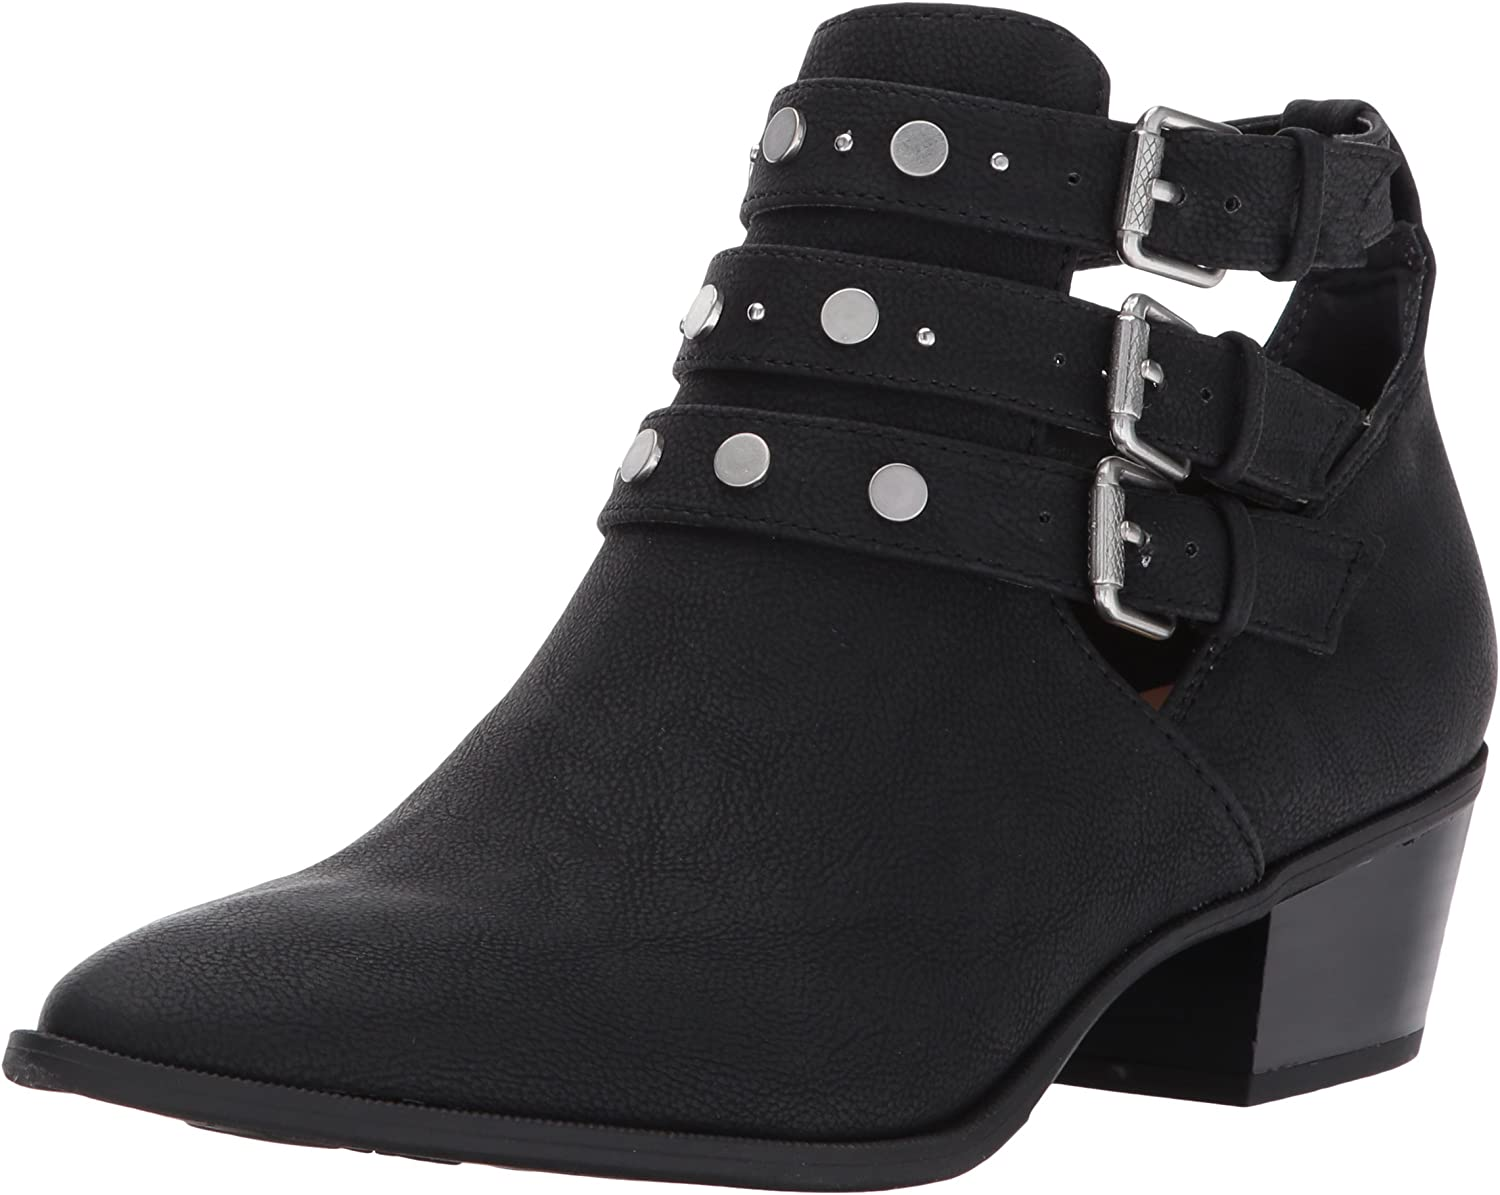 Circus by Sam Edelman Womens Henna Ankle Boot